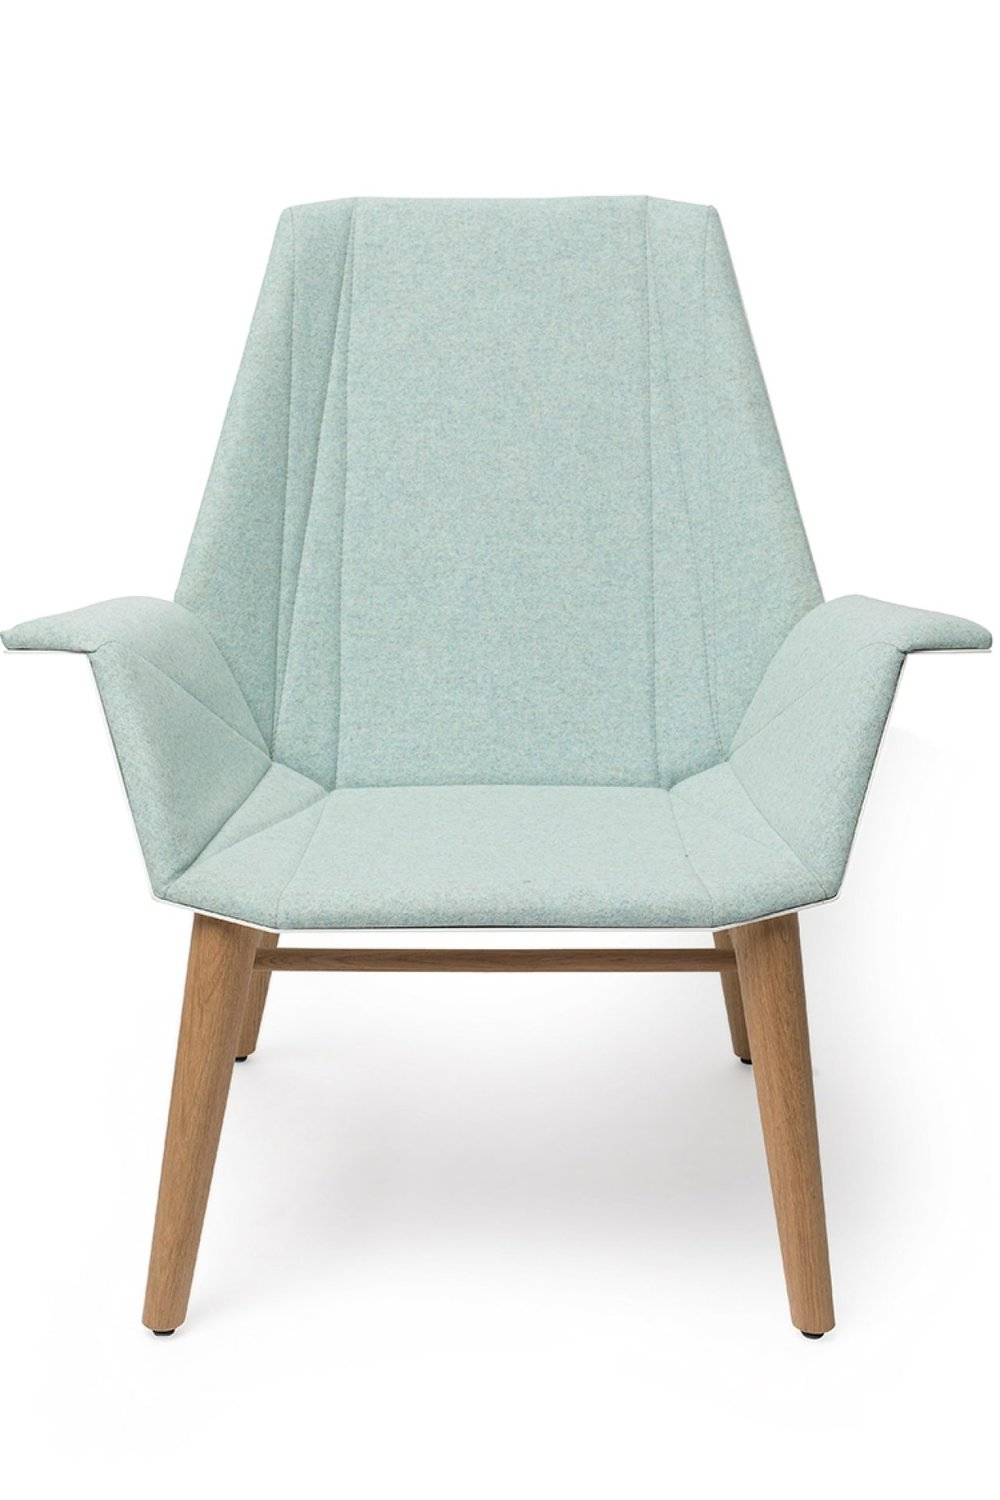 Alumni_lounge_wood_white_light_blue_front.jpg